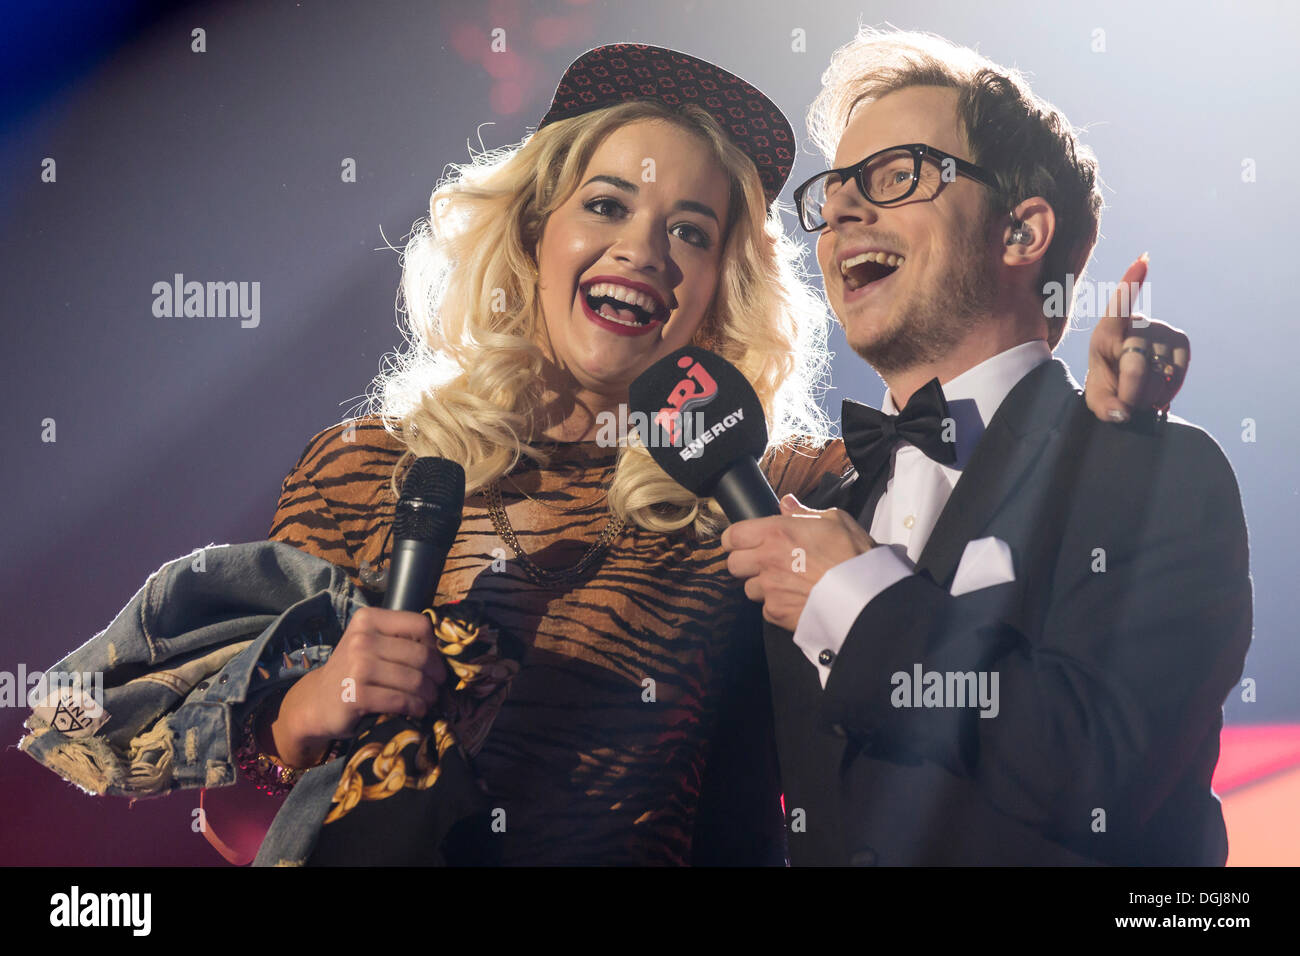 Rita Ora, a British singer, model and actress of Kosovar Albanian descent, singing live at the Energy Stars For Stock Photo